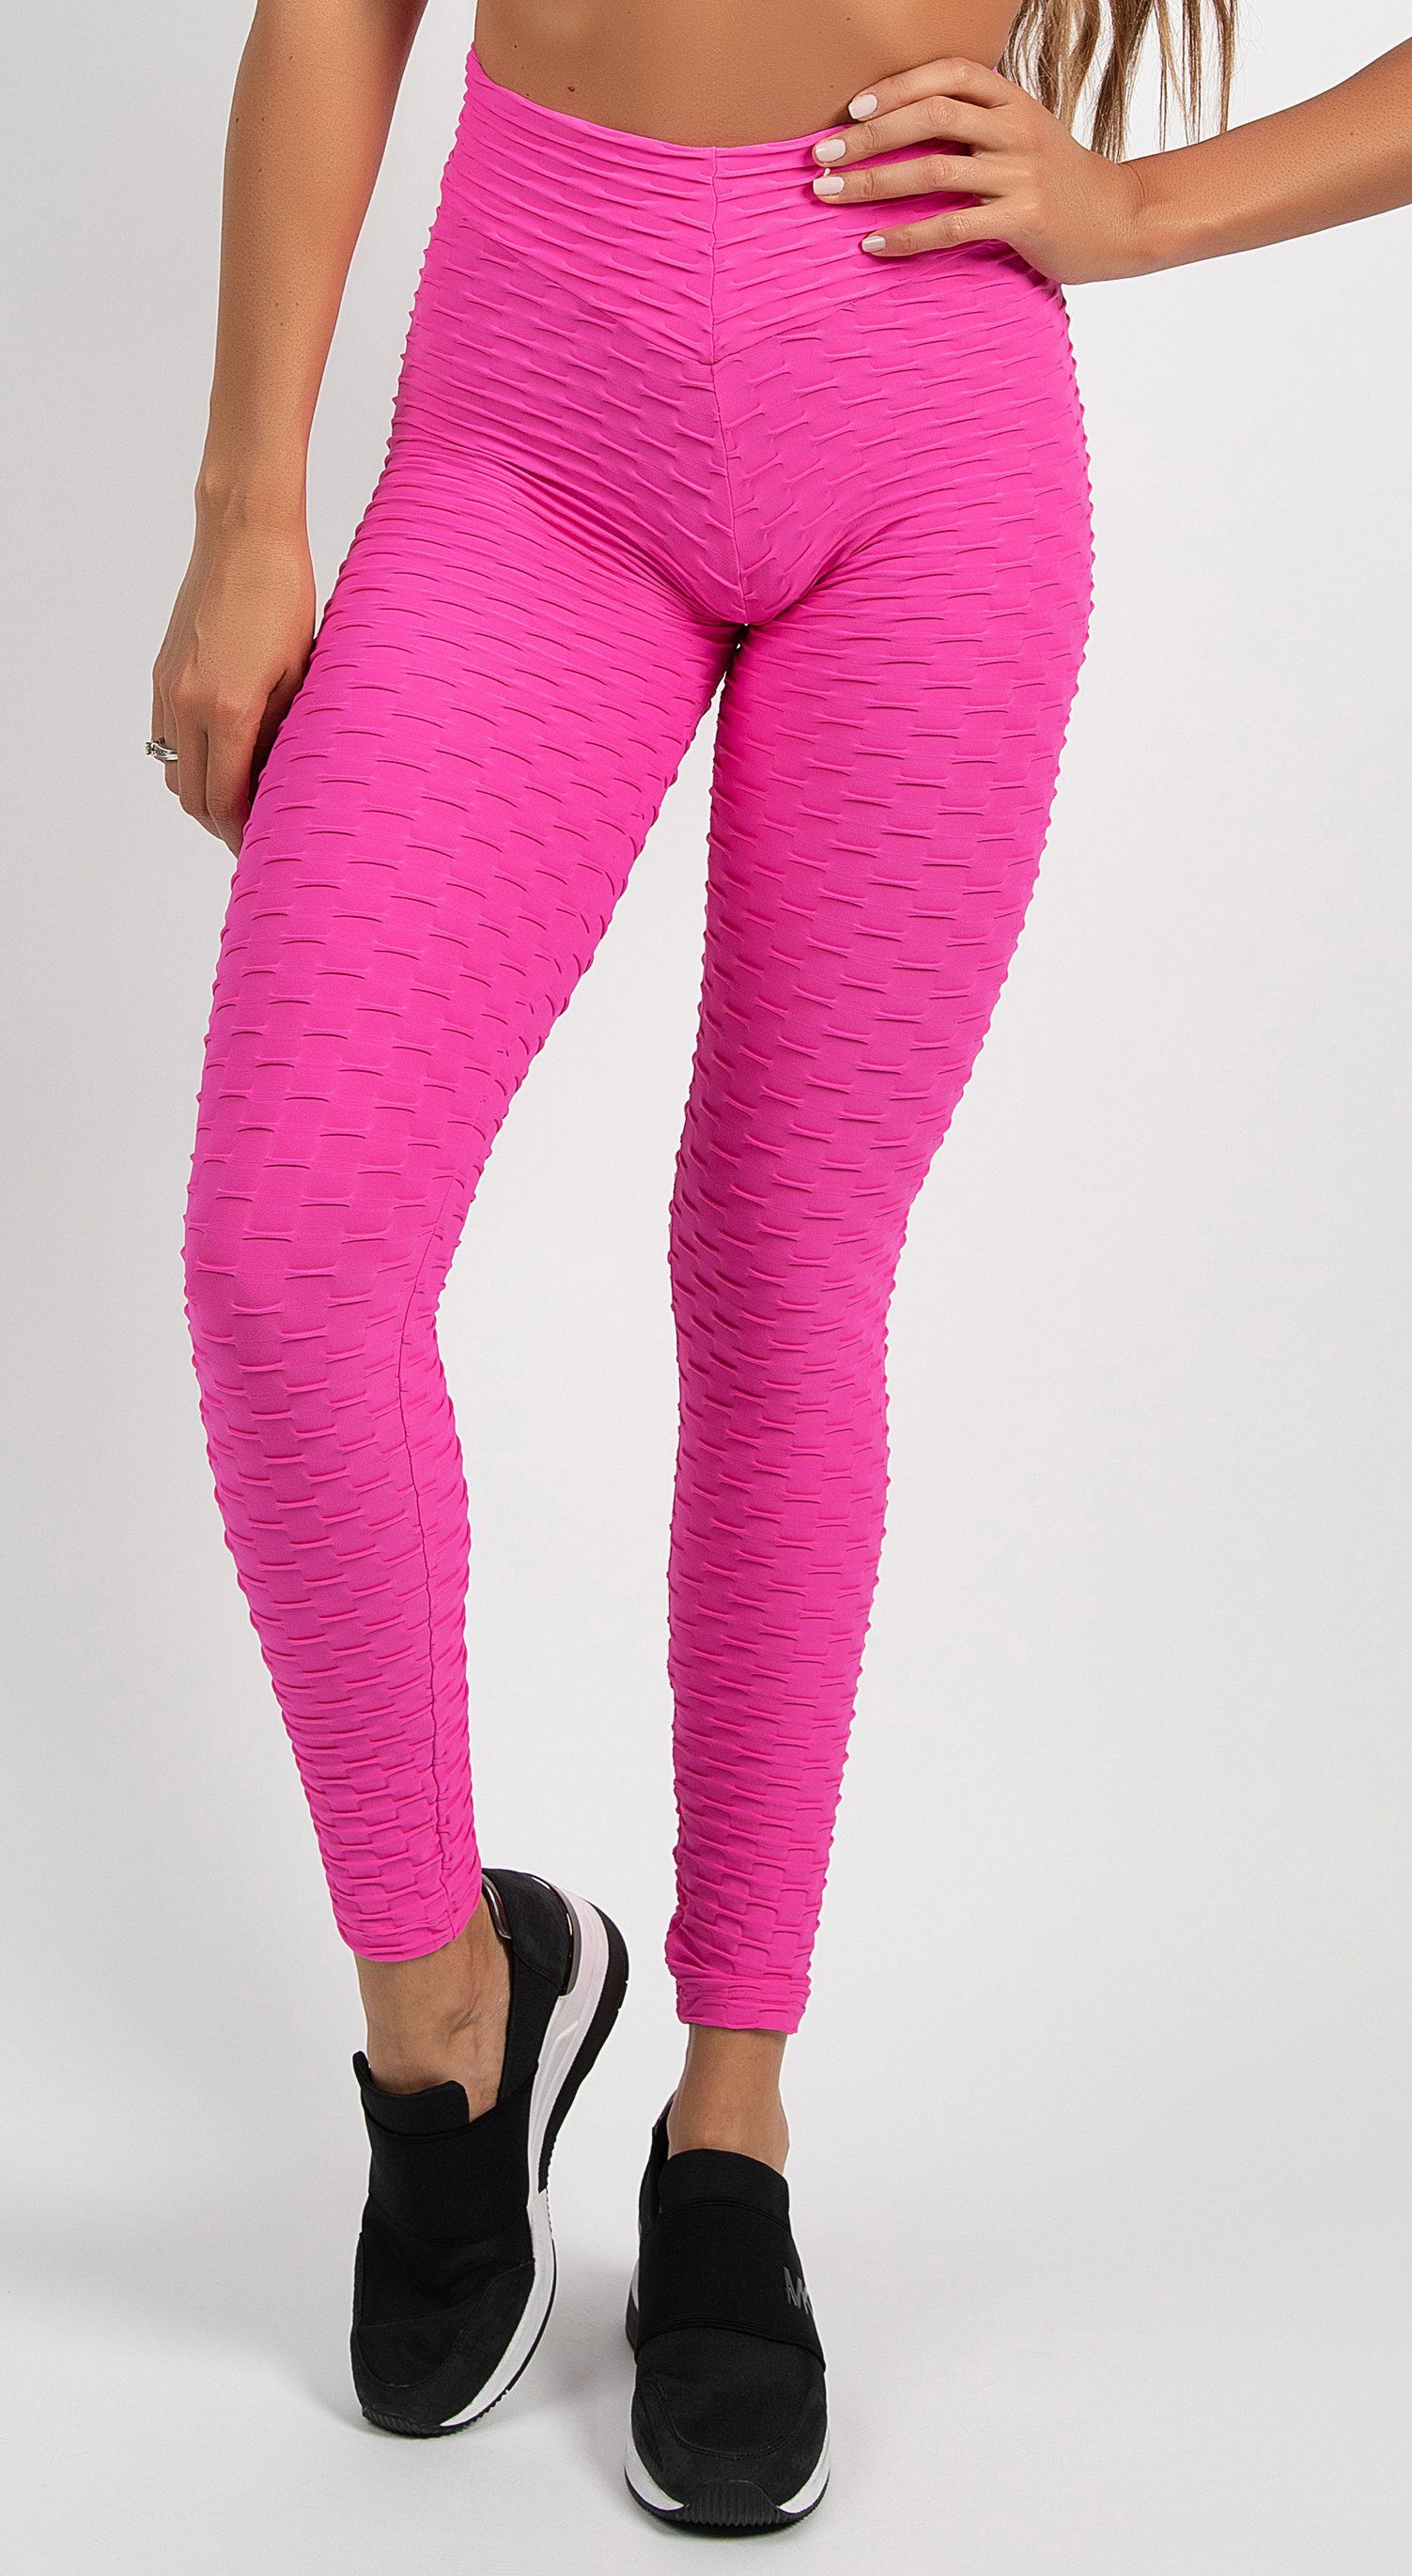 Brazilian Legging |  Anti Cellulite Honeycomb Textured Scrunch Booty Deep Pink